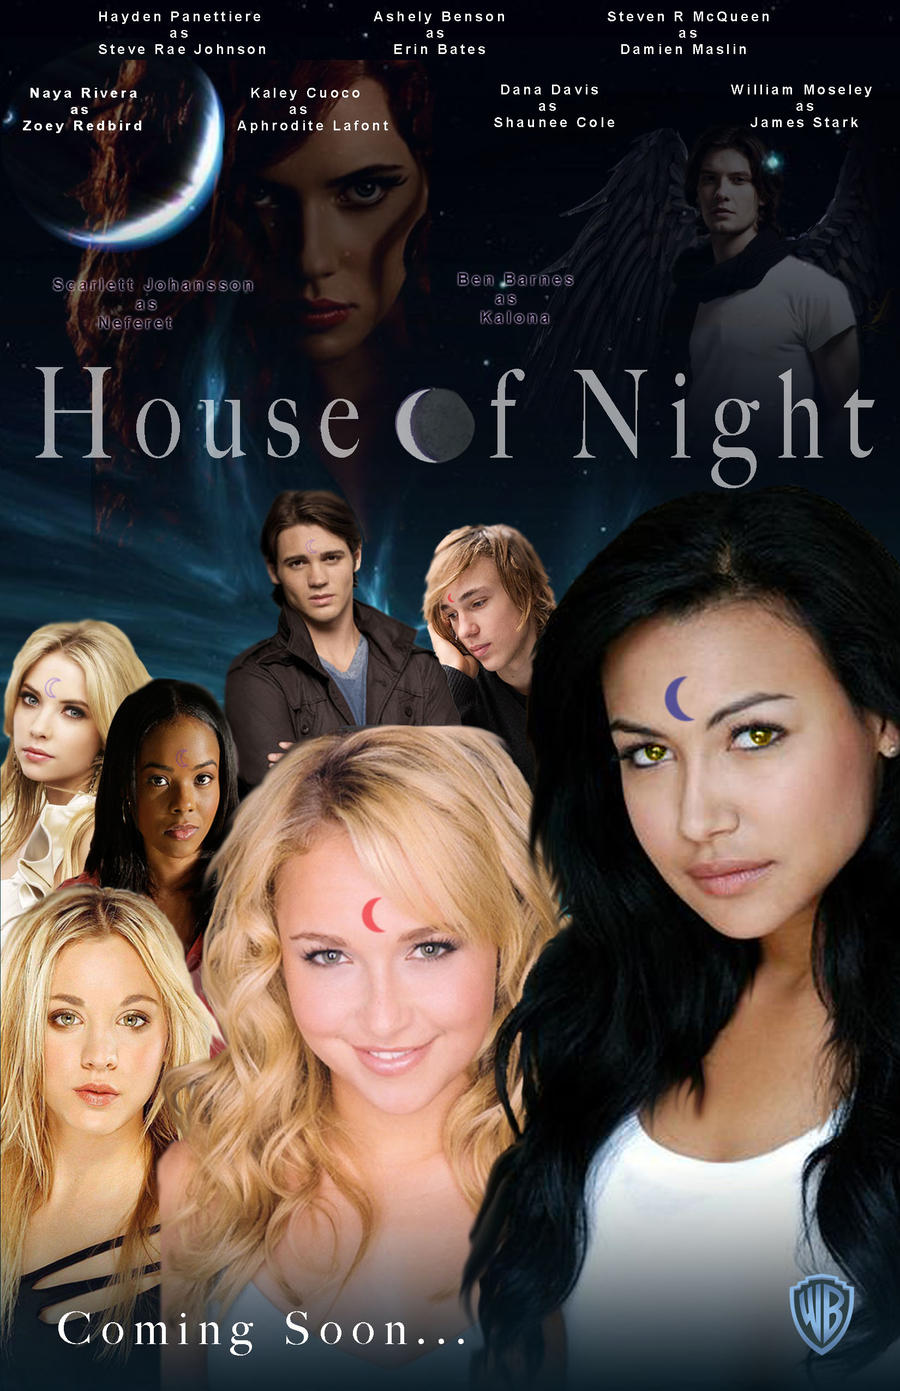 House of night movie poster by aestheticsaturn on deviantart for Housse of night